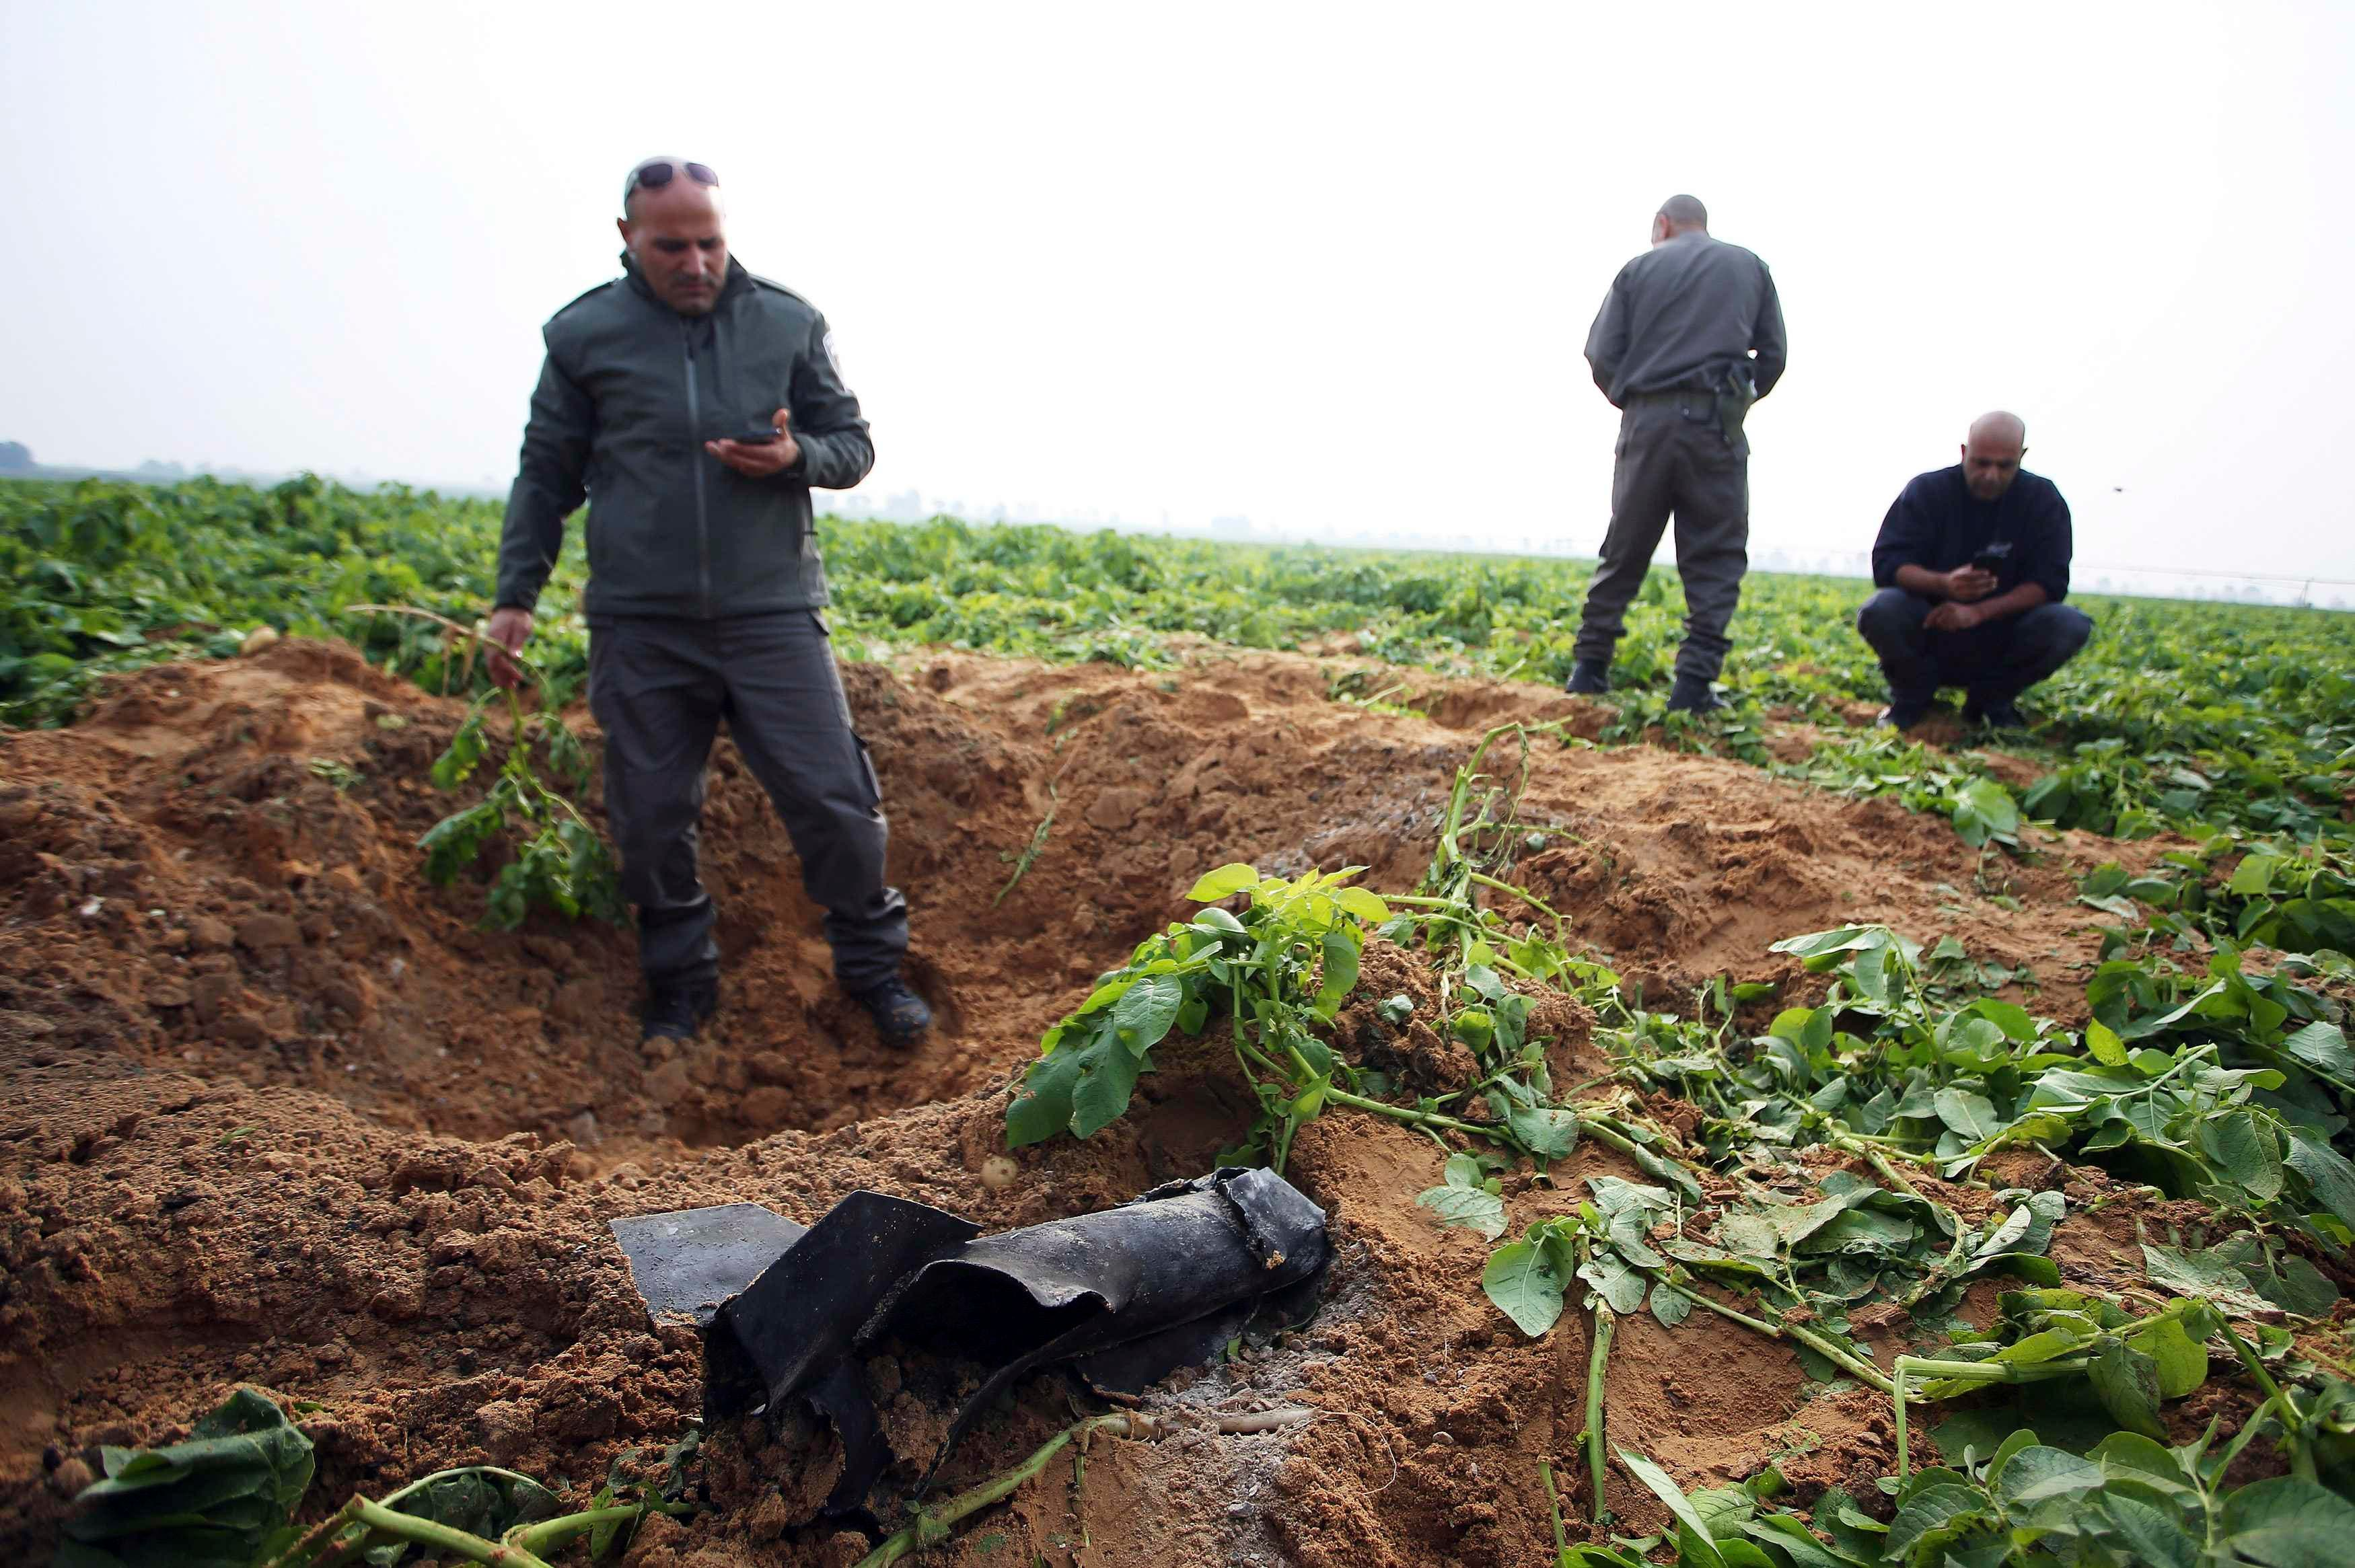 Israeli security forces stand next to the remains of a rocket that was fired from the Gaza Strip towards Israel on Friday, on the Israeli side of the border December 19, 2014. reuters